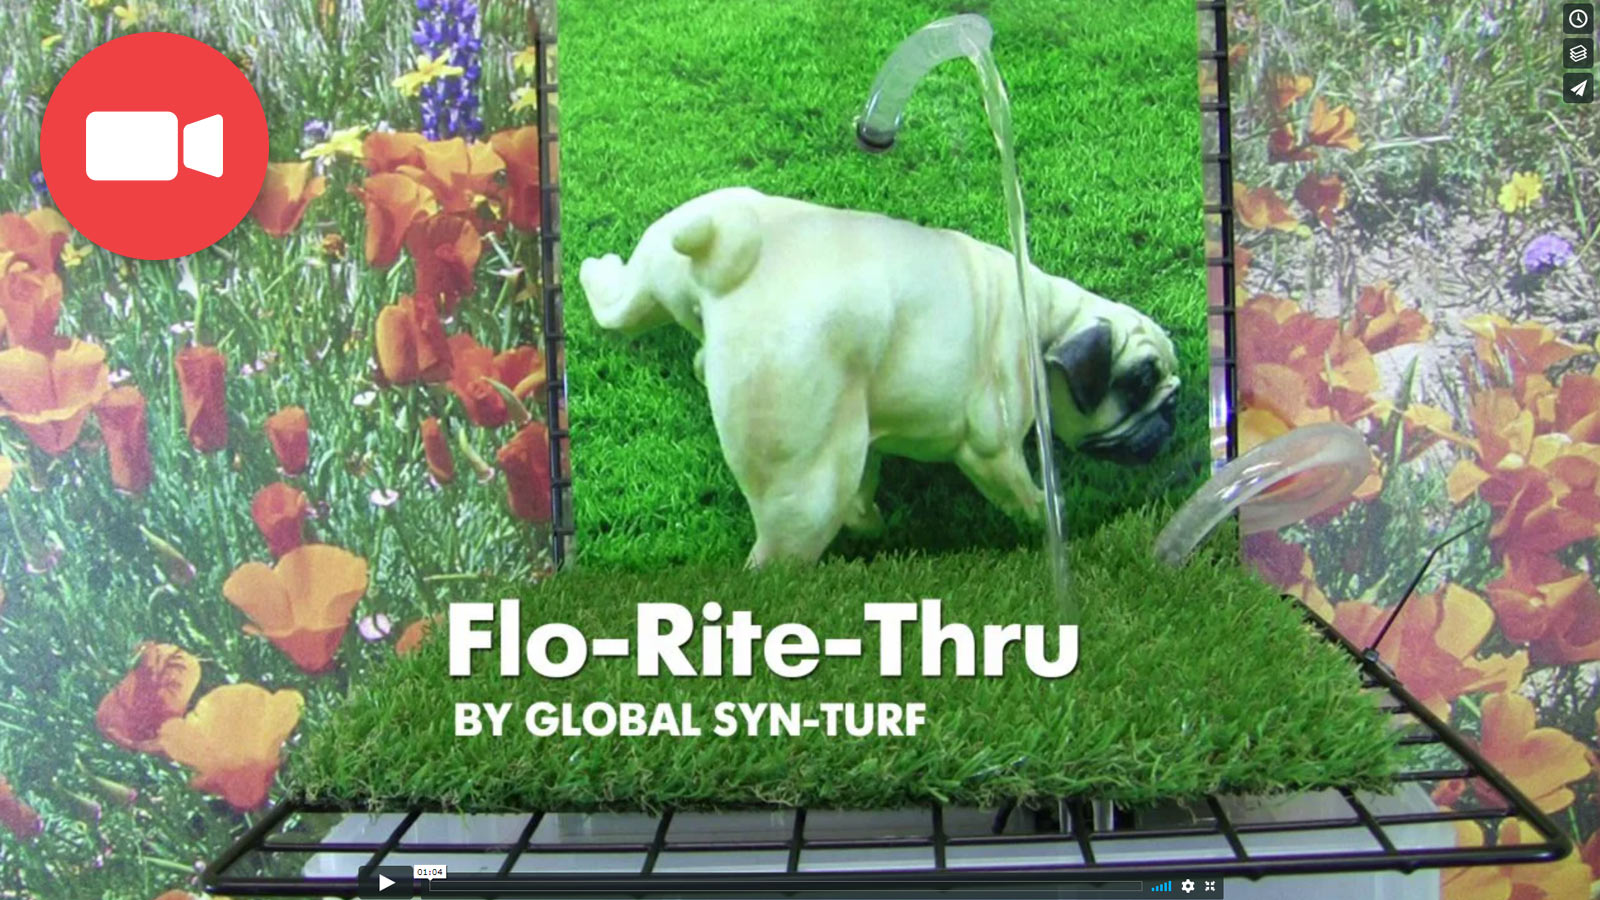 Artificial Grass Flo-Rite-Thru technology offers a perfect drainage ideal for pet areas.